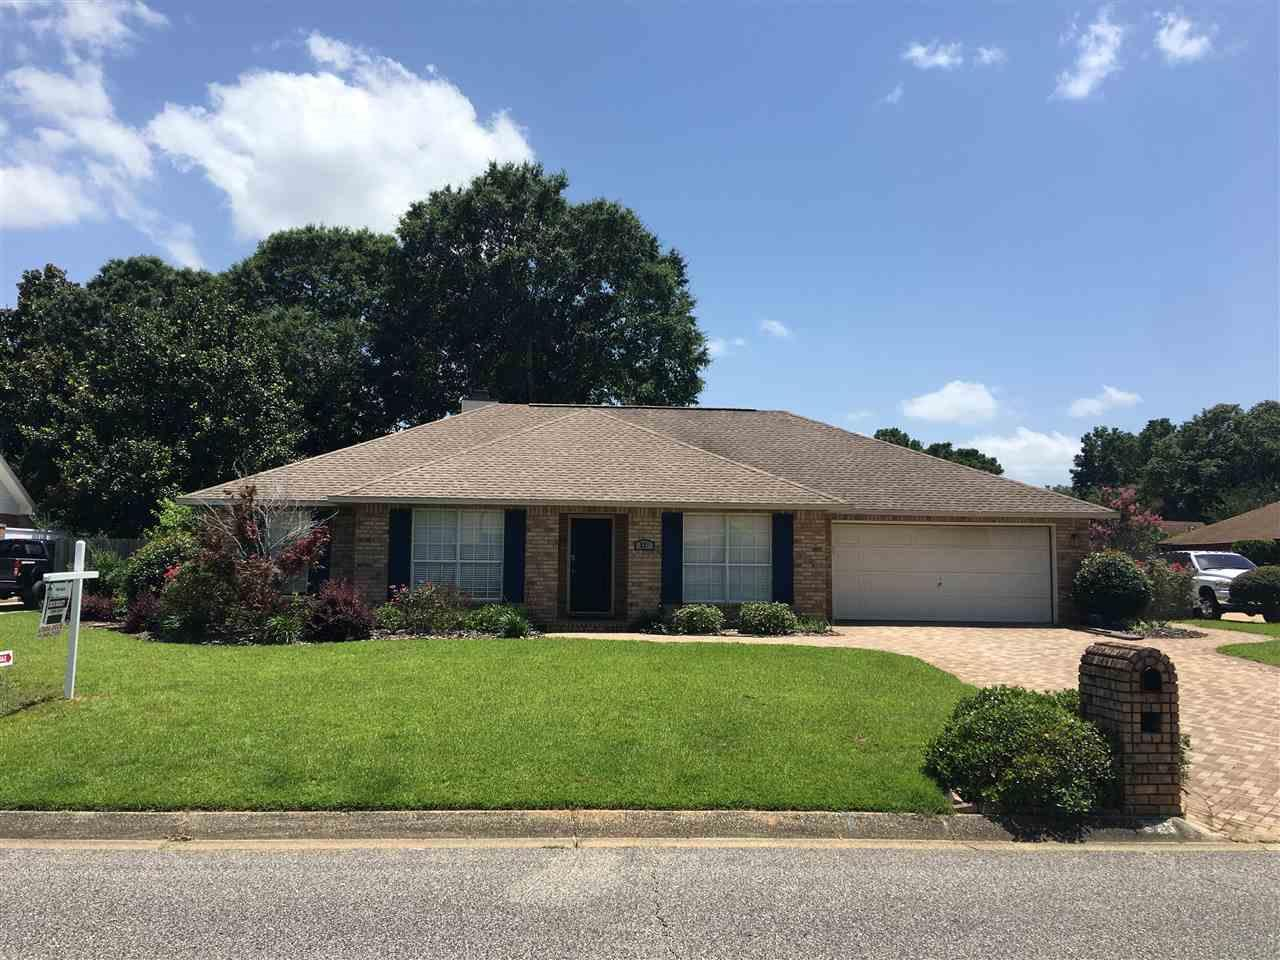 521 Turnberry Rd, Cantonment, FL 32533